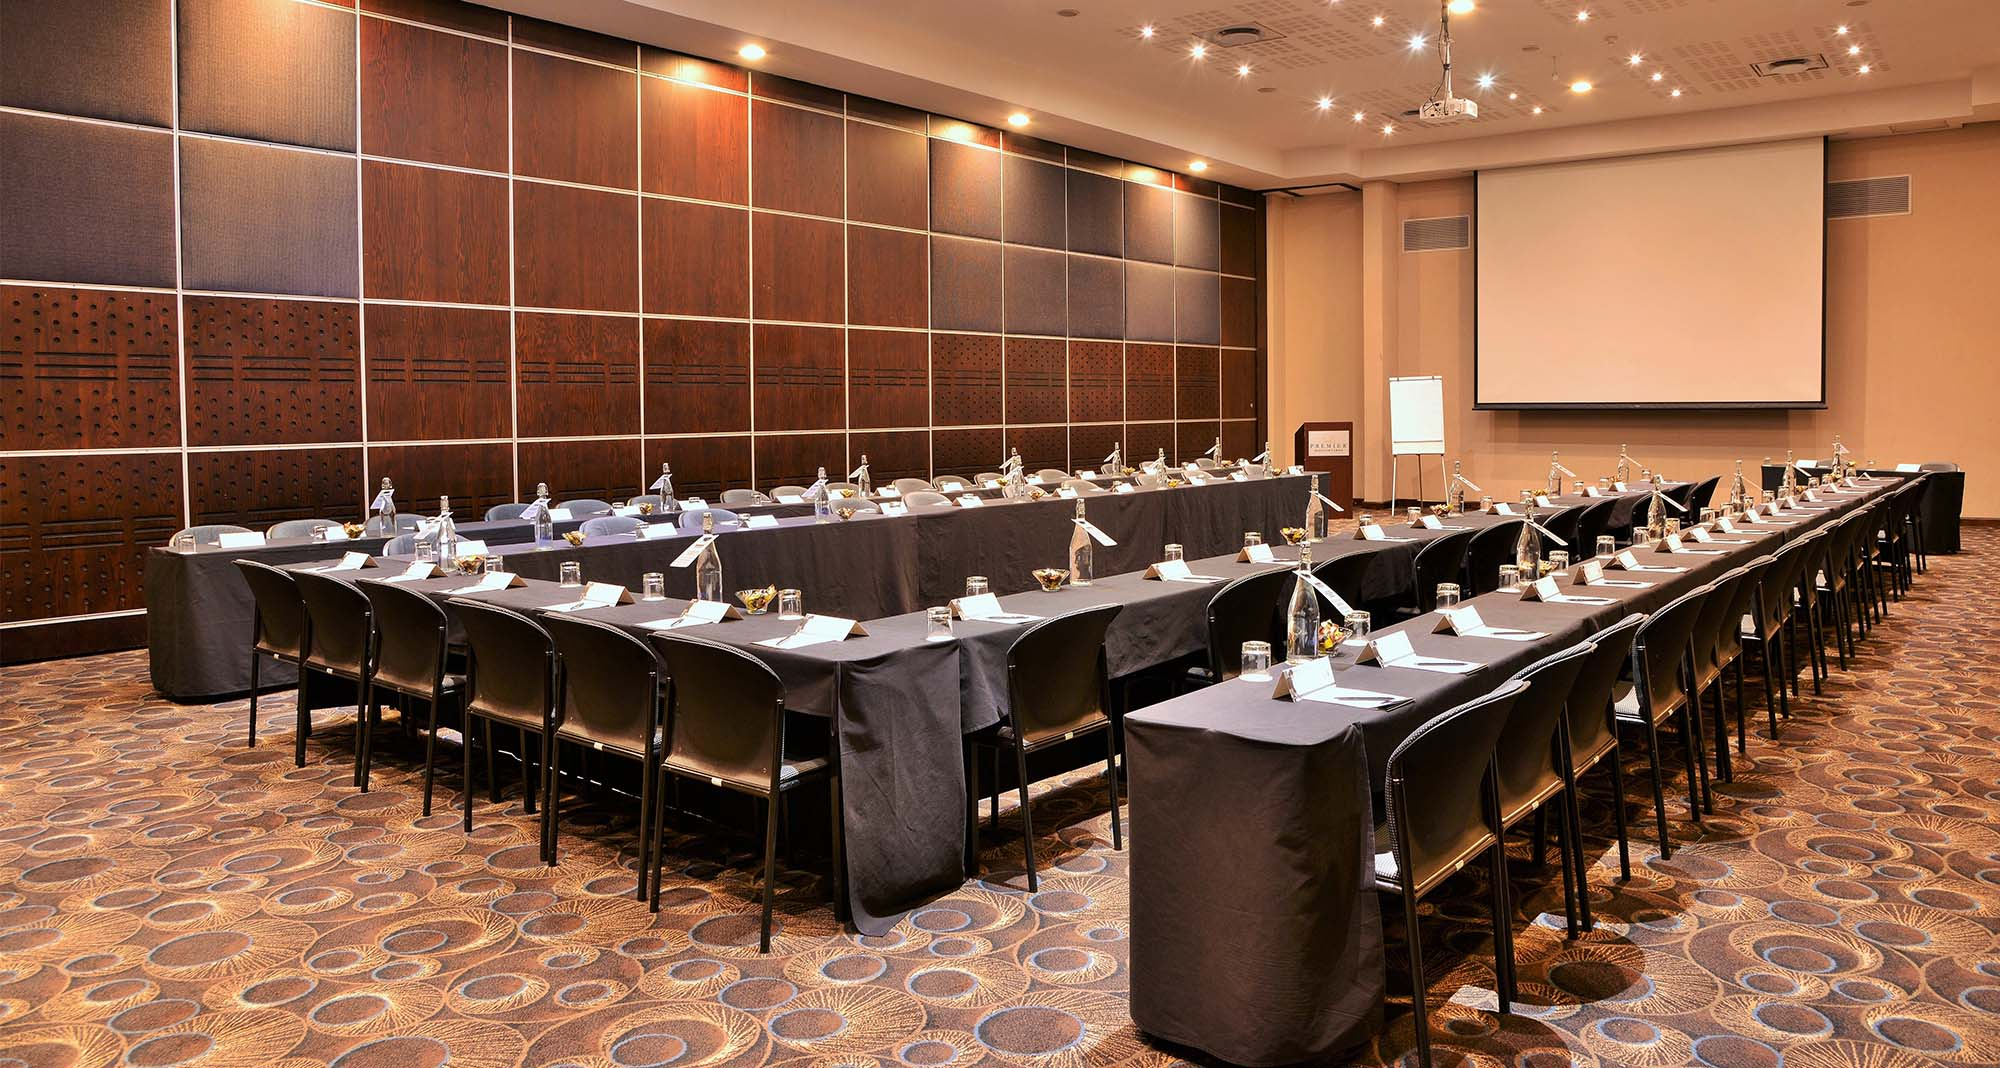 Premier Hotel OR Tambo Conference Facilities | Premier Hotels